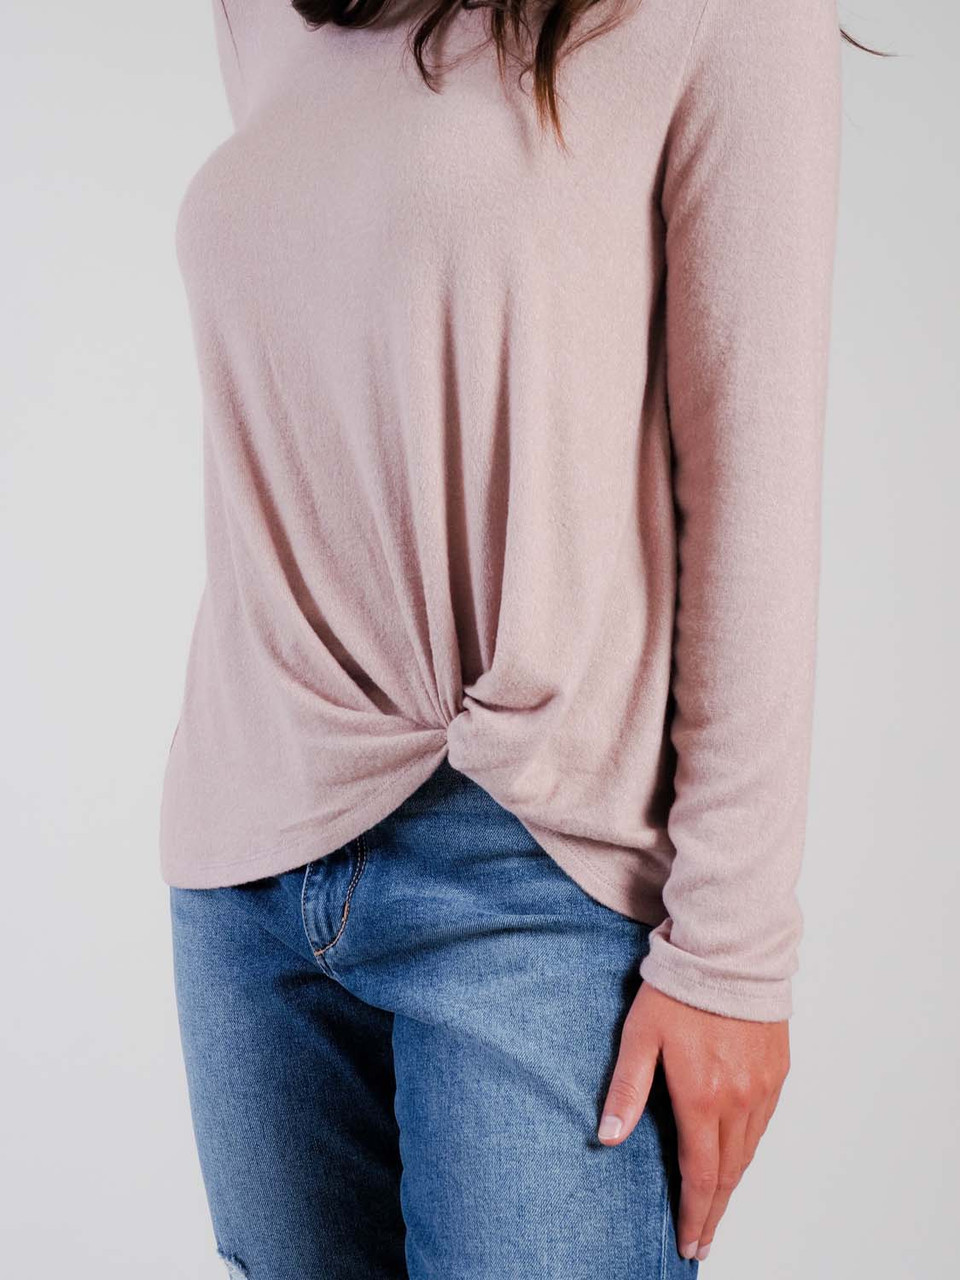 mudpie knotted top in mauve